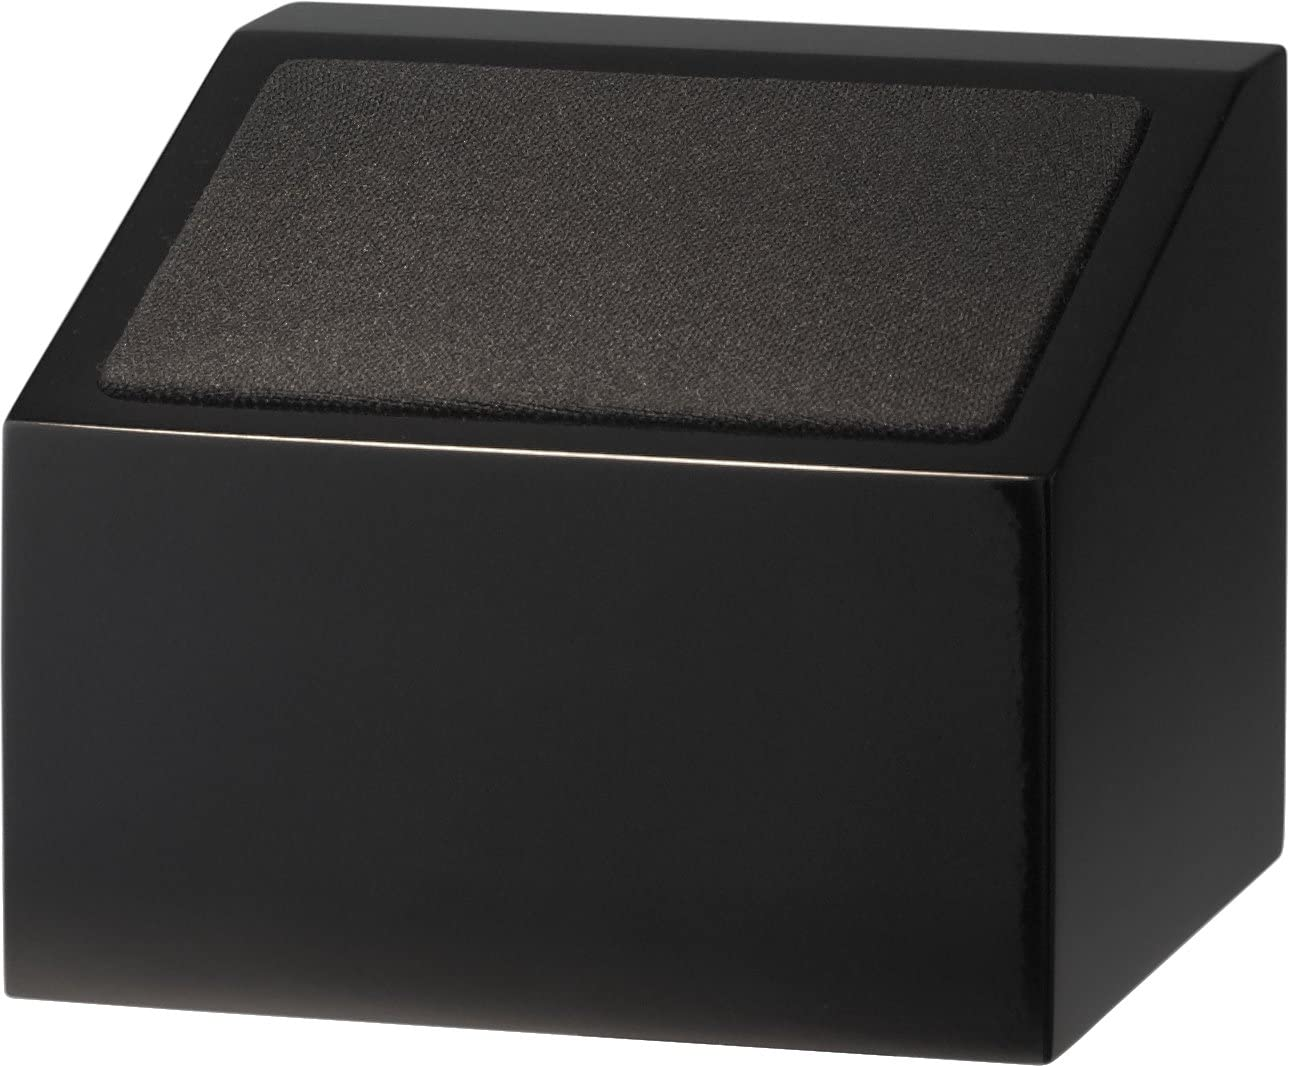 NHT Atmos Mini Add-On Speaker for Dolby Atmos, Single, High Gloss Black